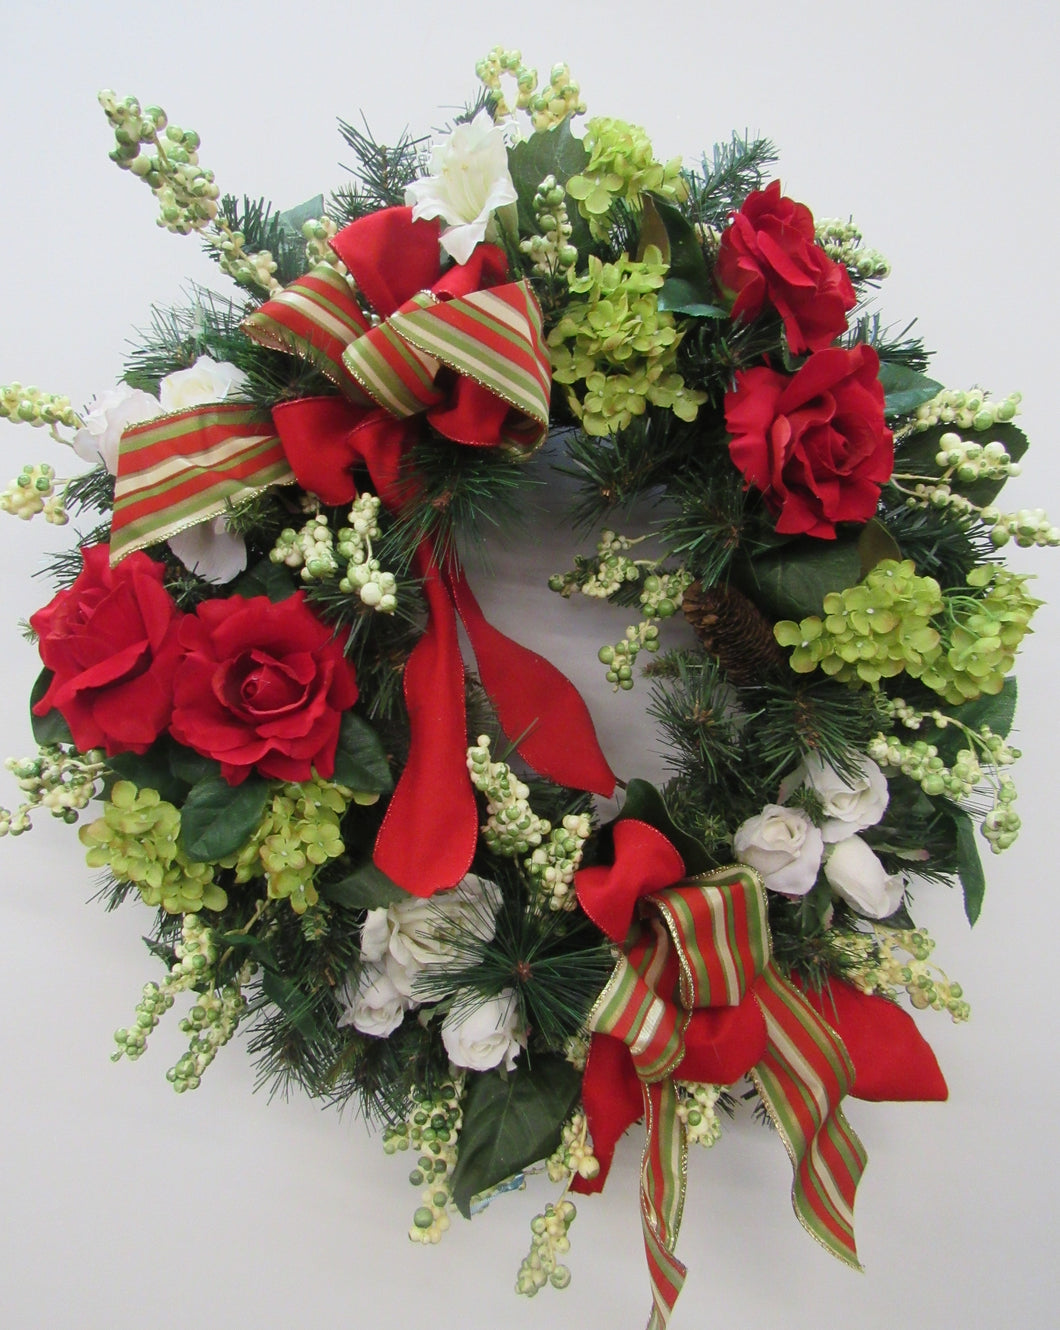 Gallery/ Hol111 - April's Garden Wreath